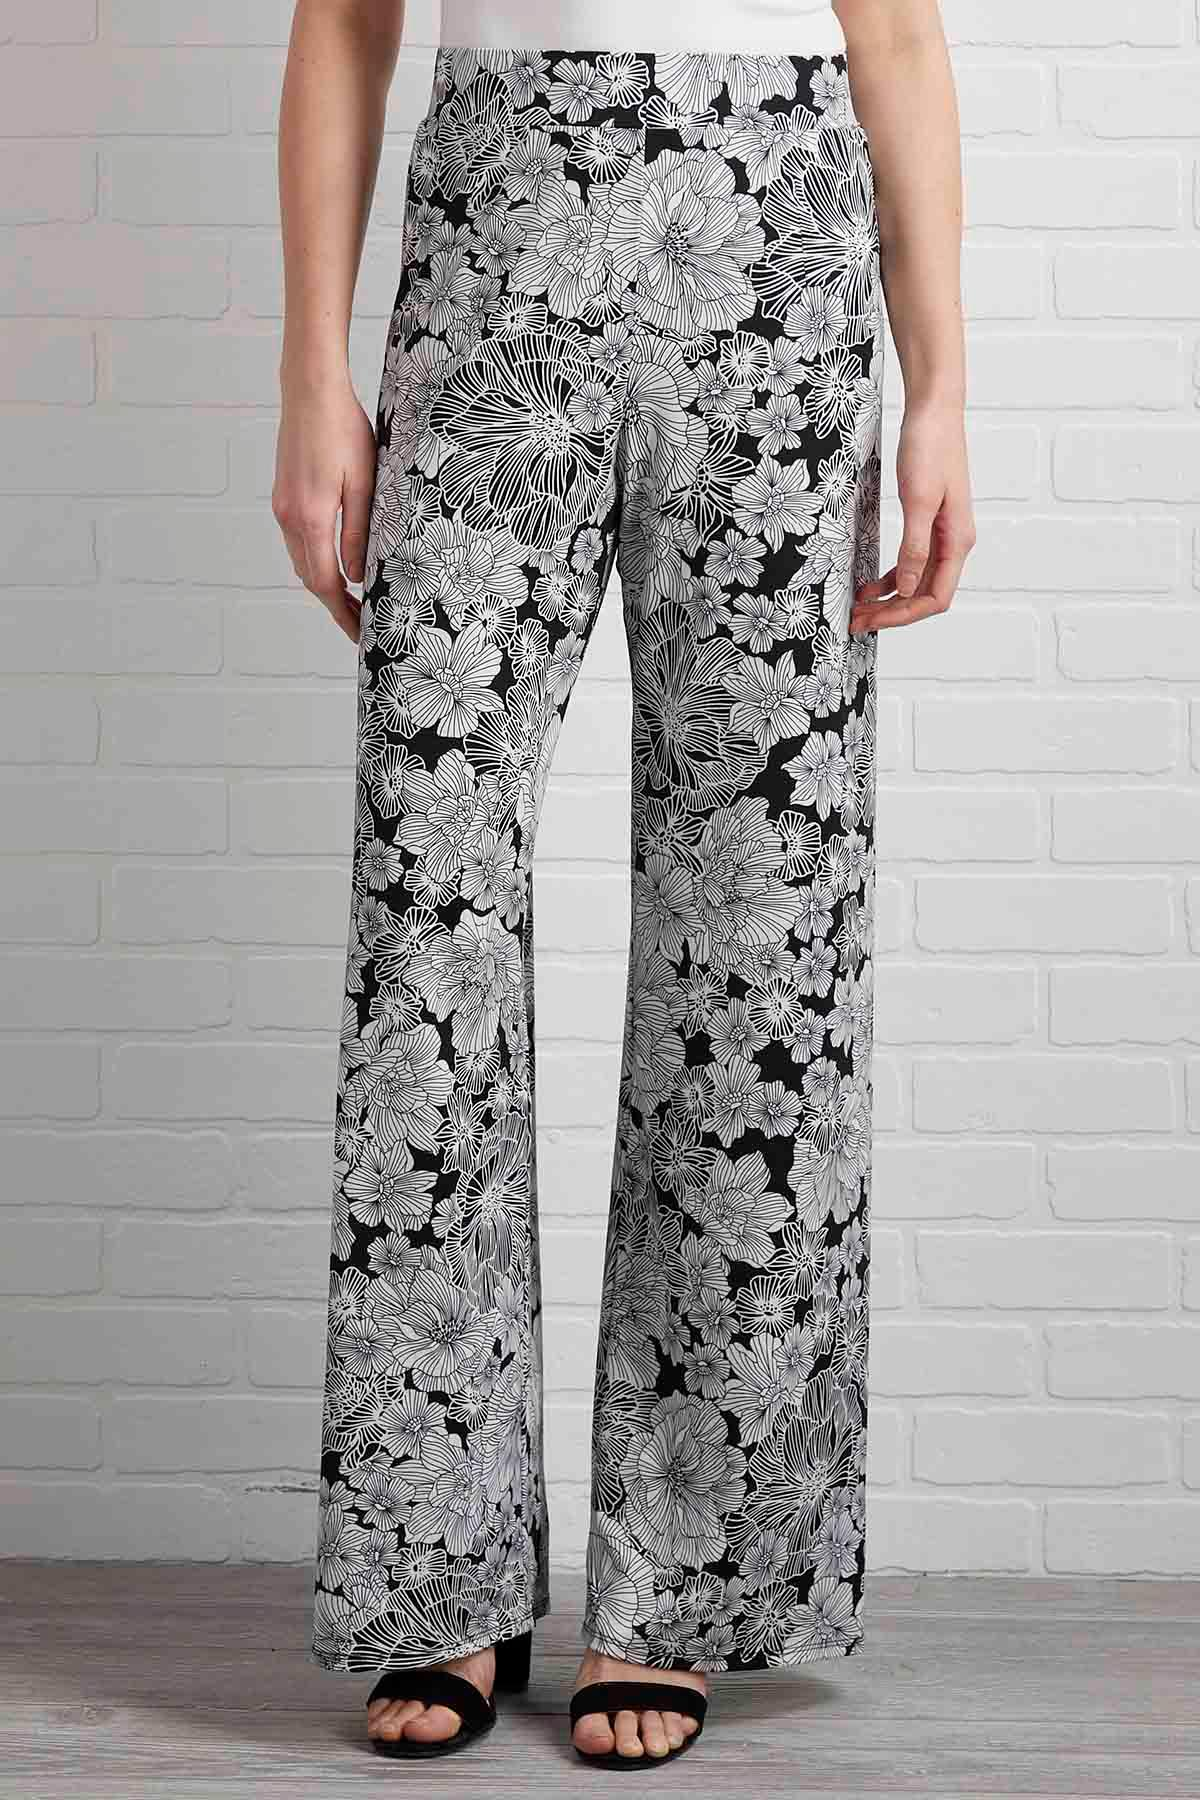 Wine Country Pants